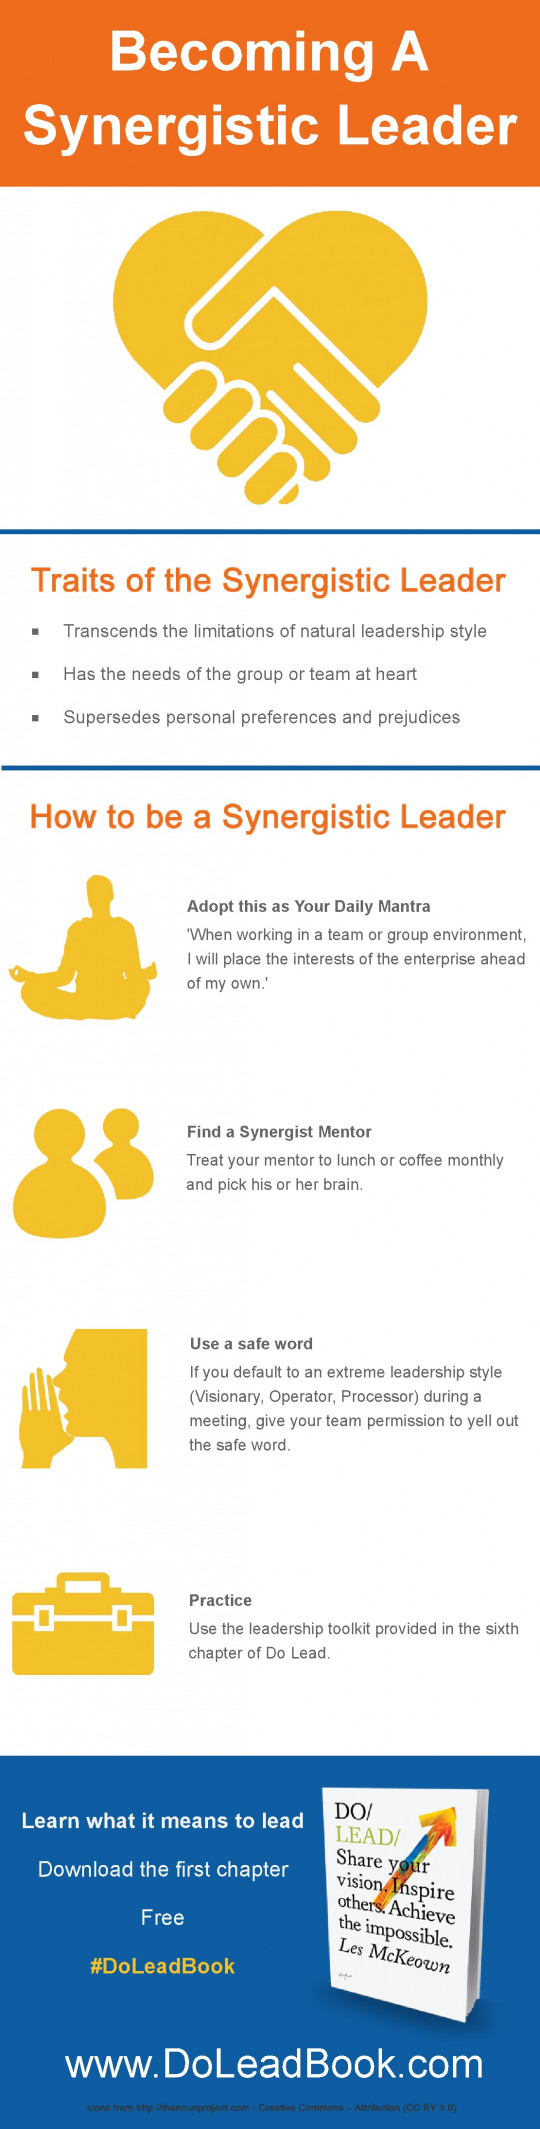 Becoming a Synergistic Leader